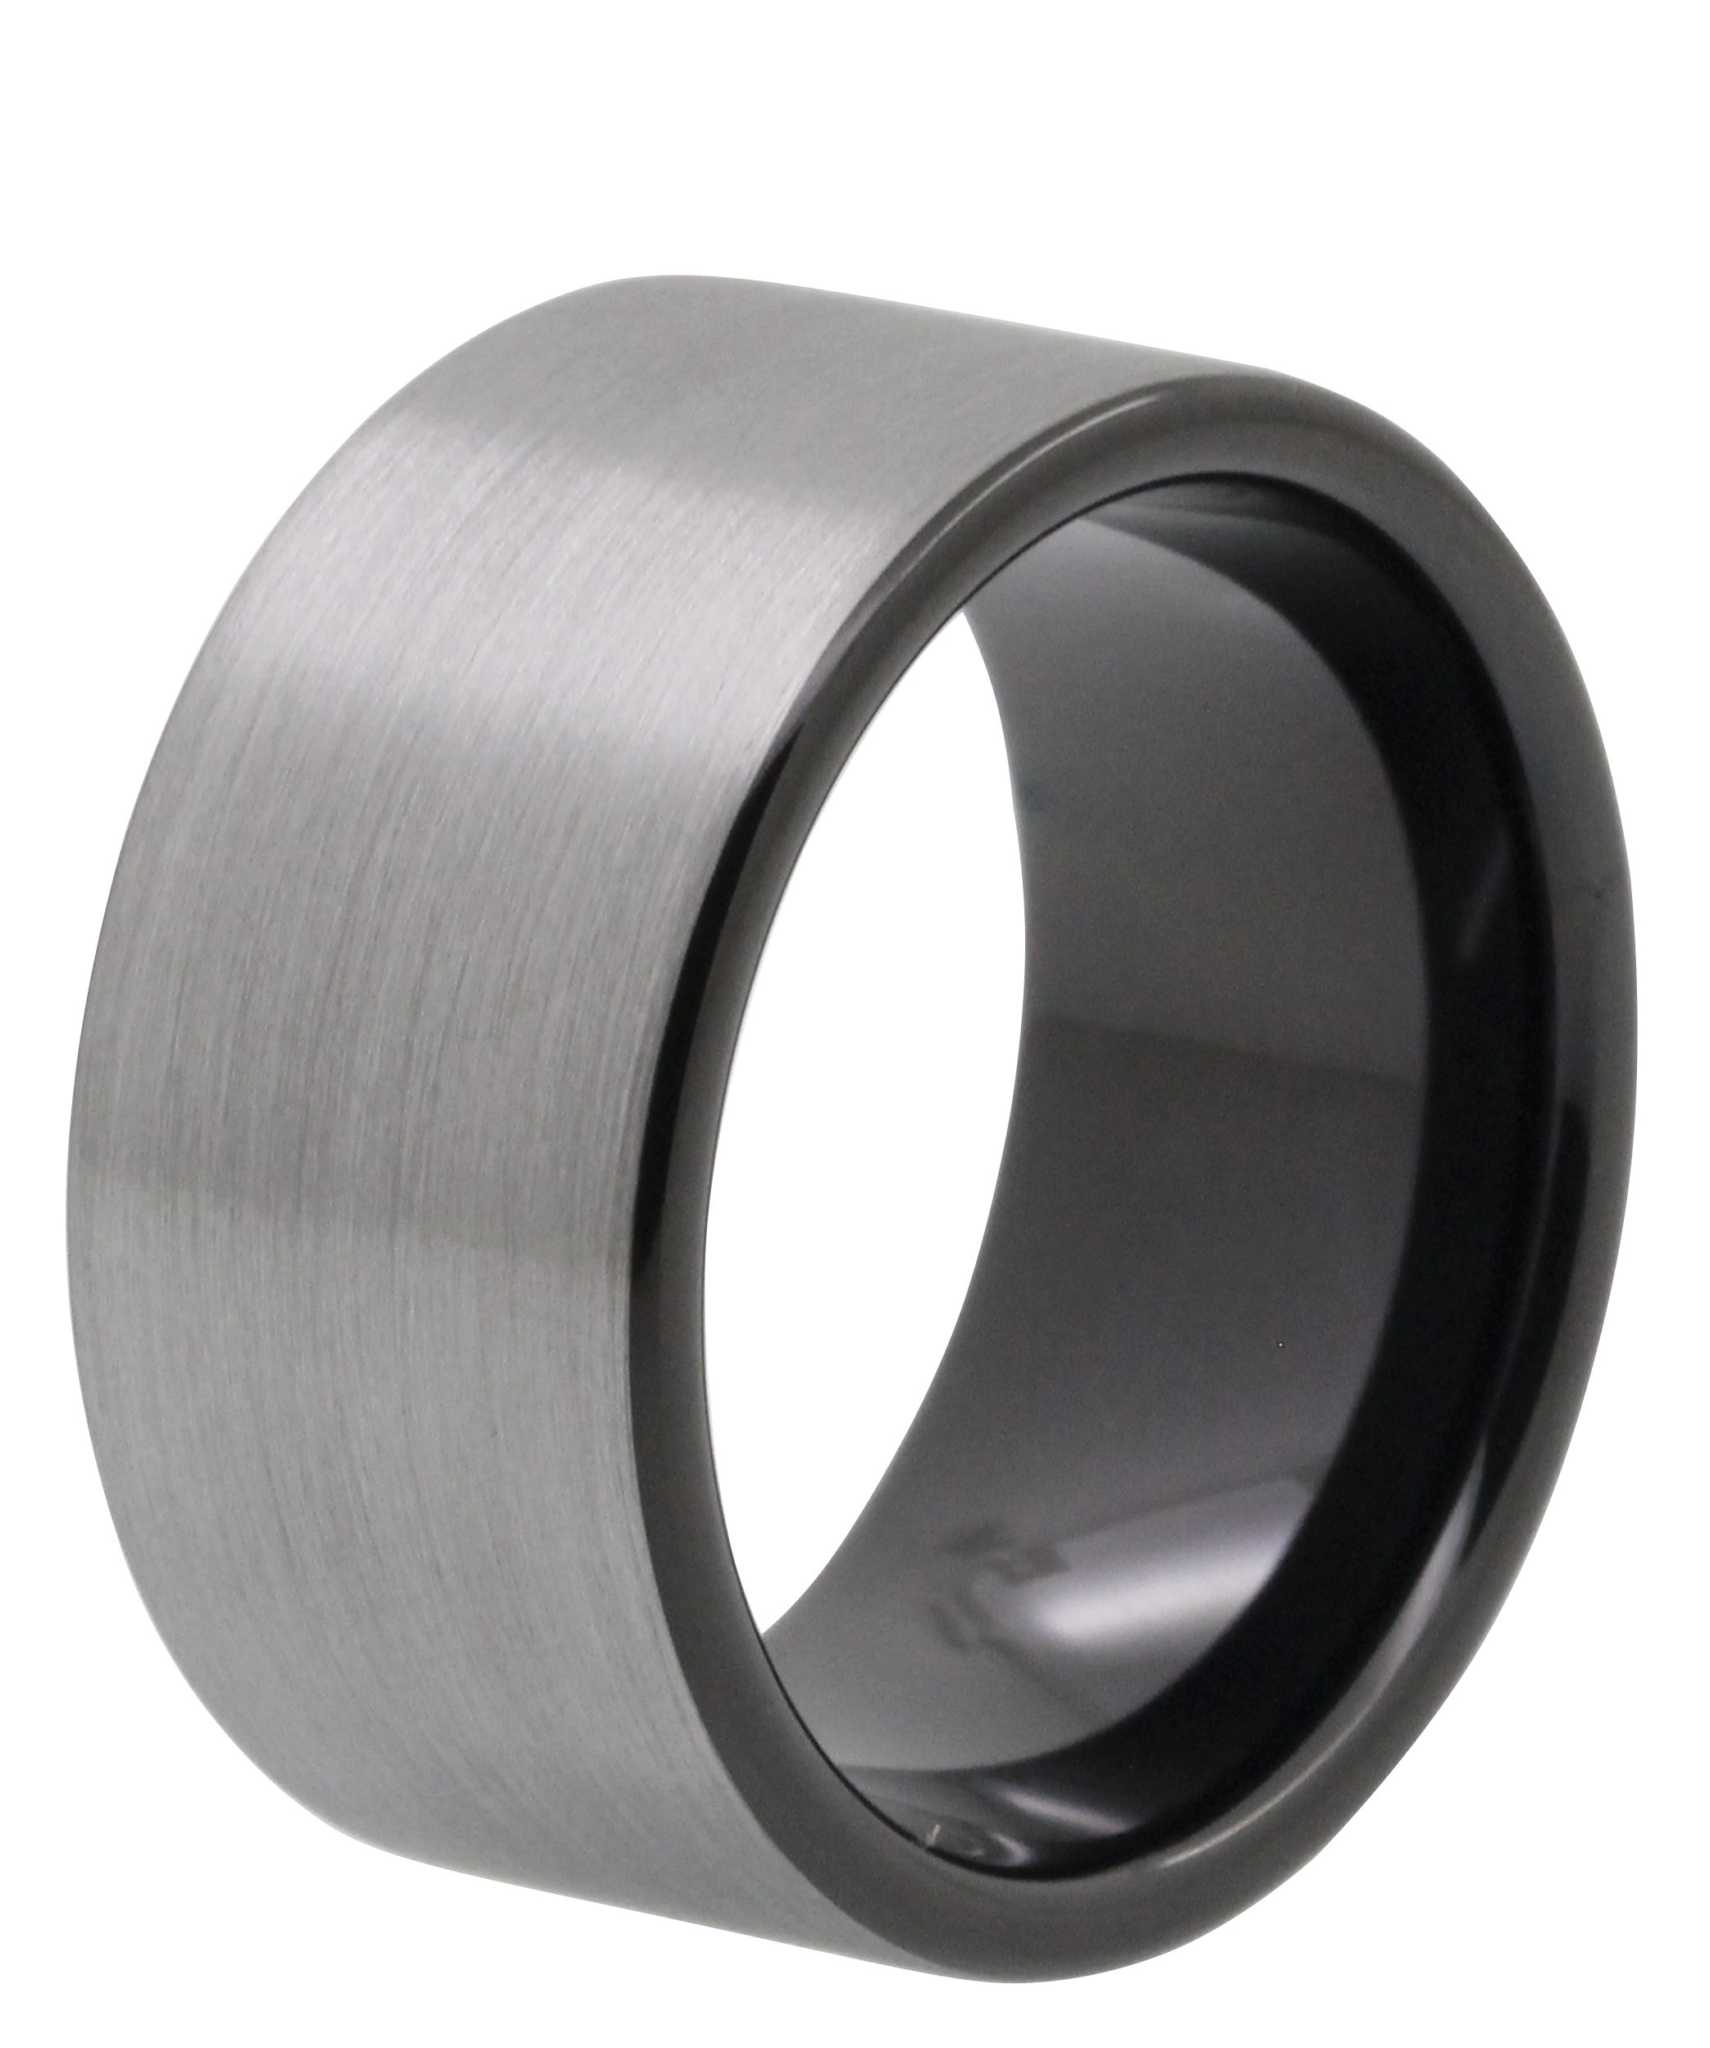 12mm brushed tayloright tungsten wedding band - Tungsten Wedding Rings For Men